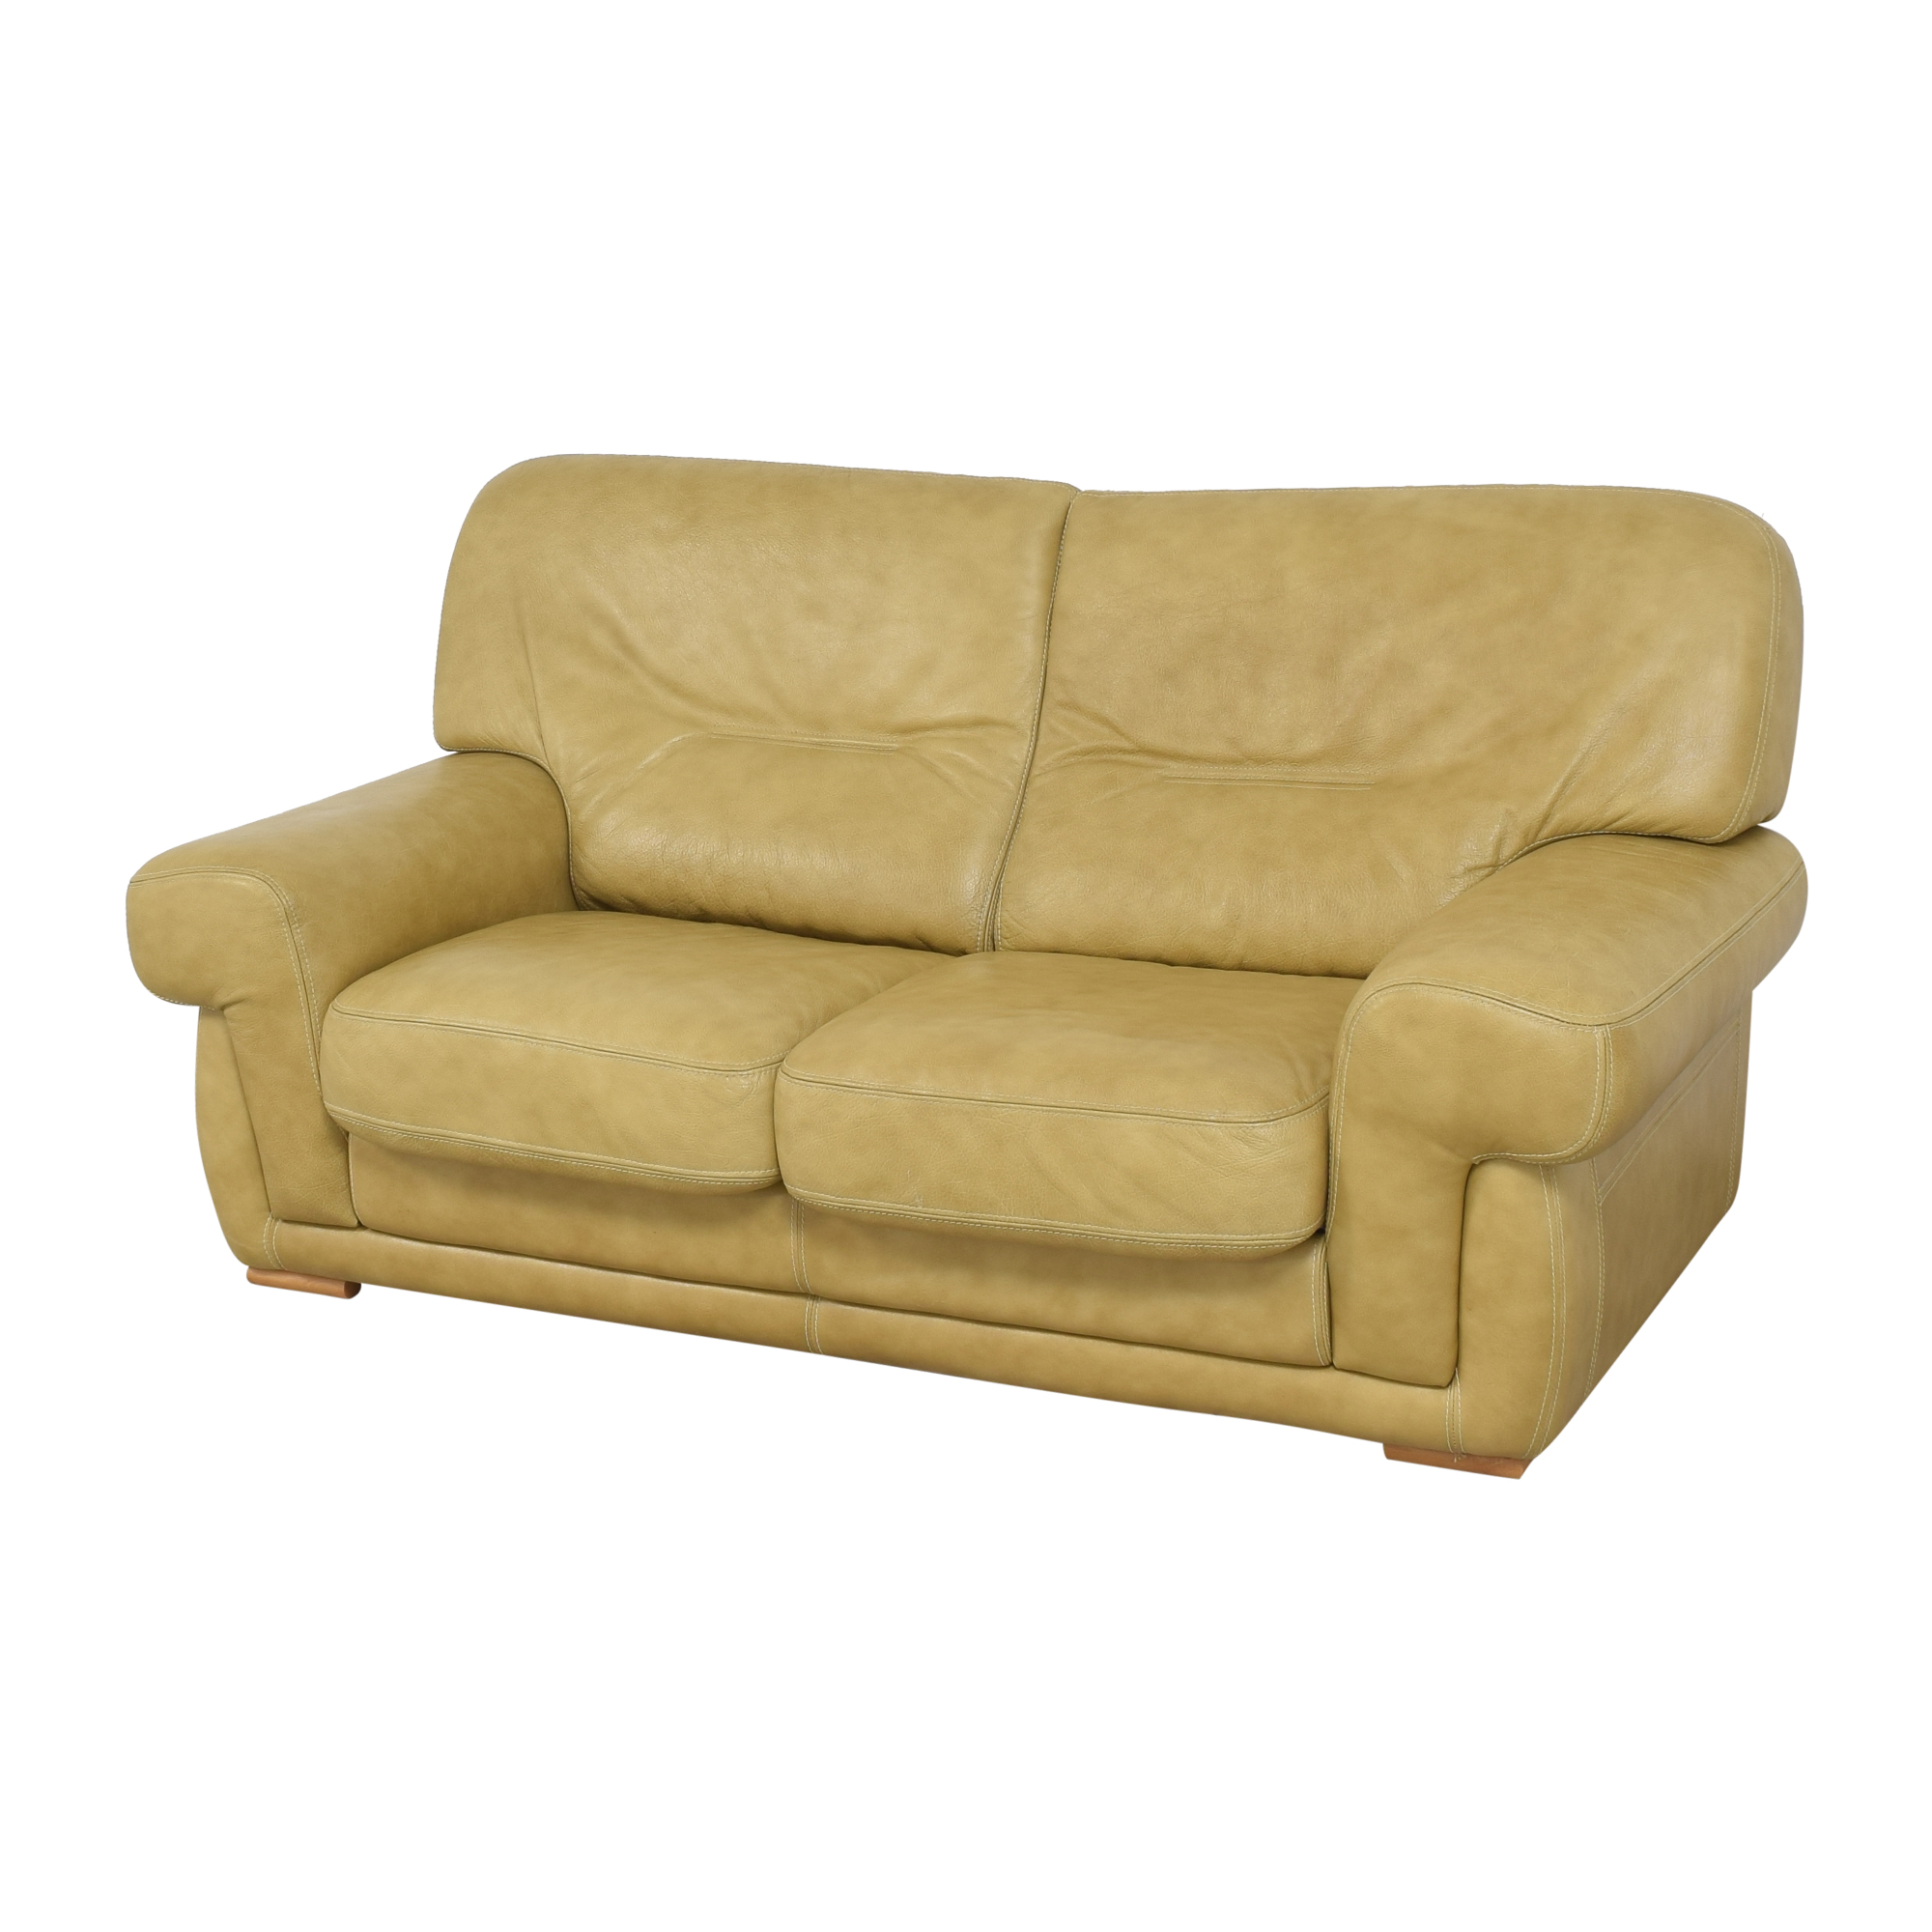 Formitalia Formitalia DIDI Collection Loveseat price